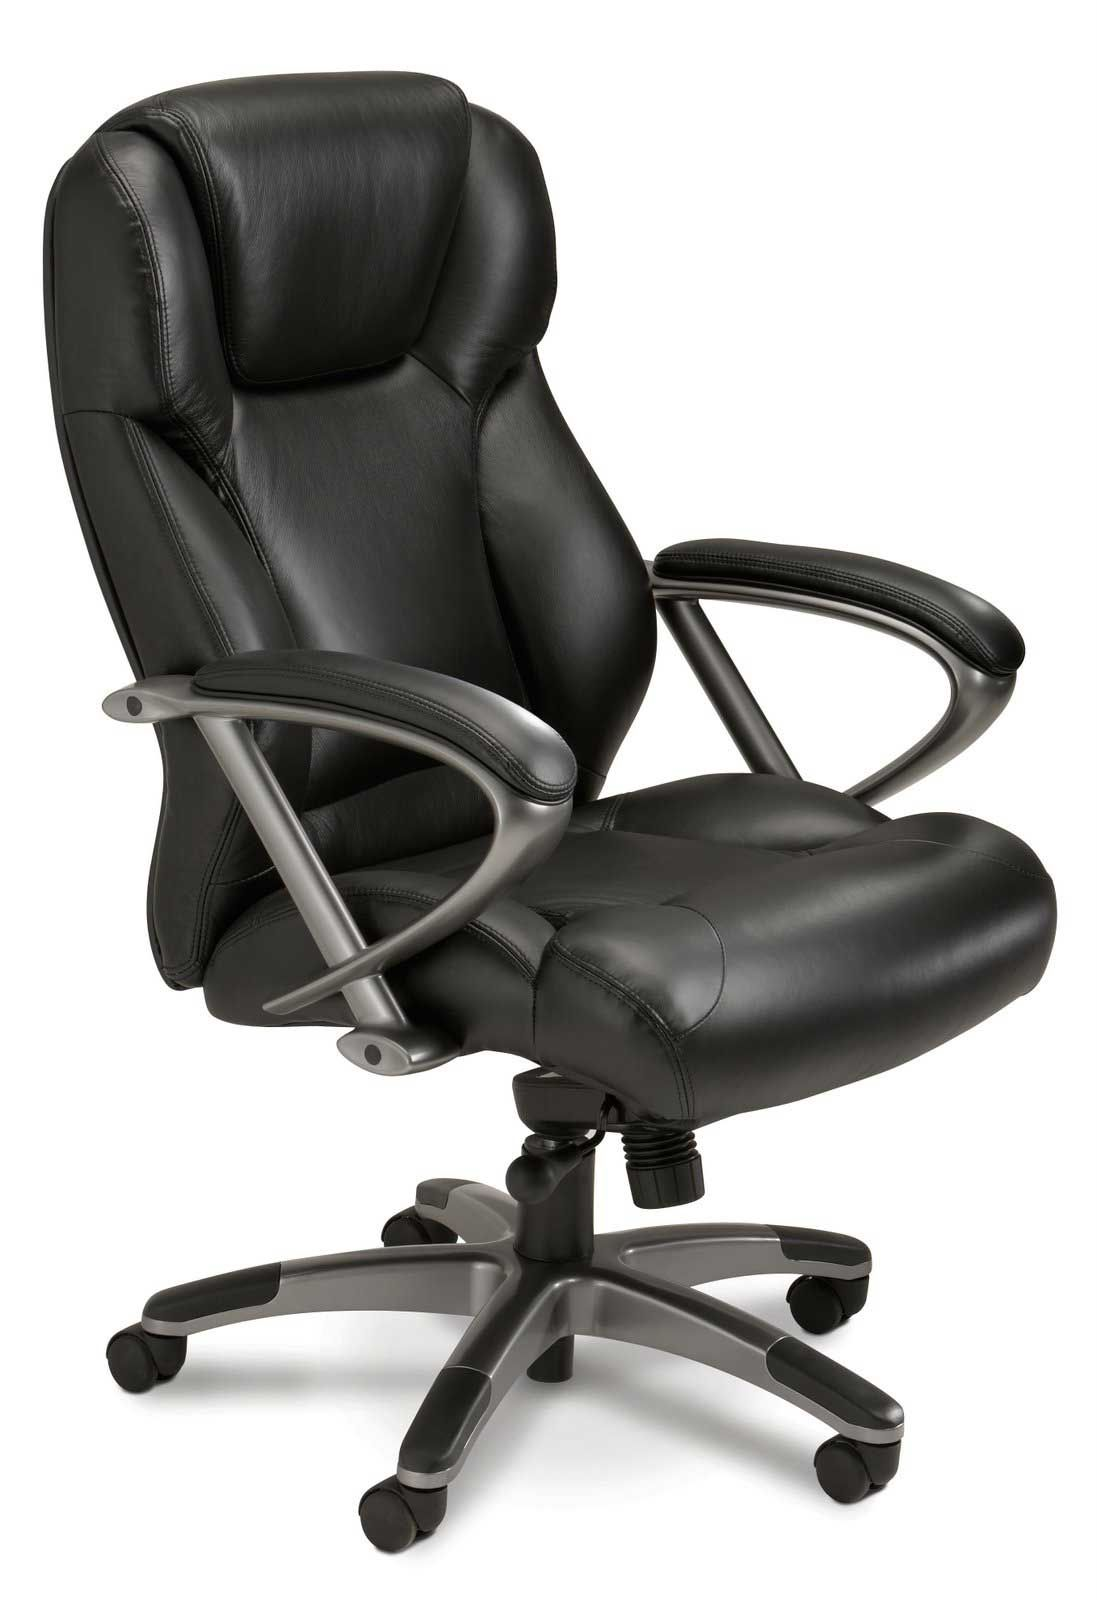 Luxurious office chairs Back Office Ultimo Black Luxury Office Chairs Series Challengesofaging Ultimo Black Luxury Office Chairs Series Office Chair Chair